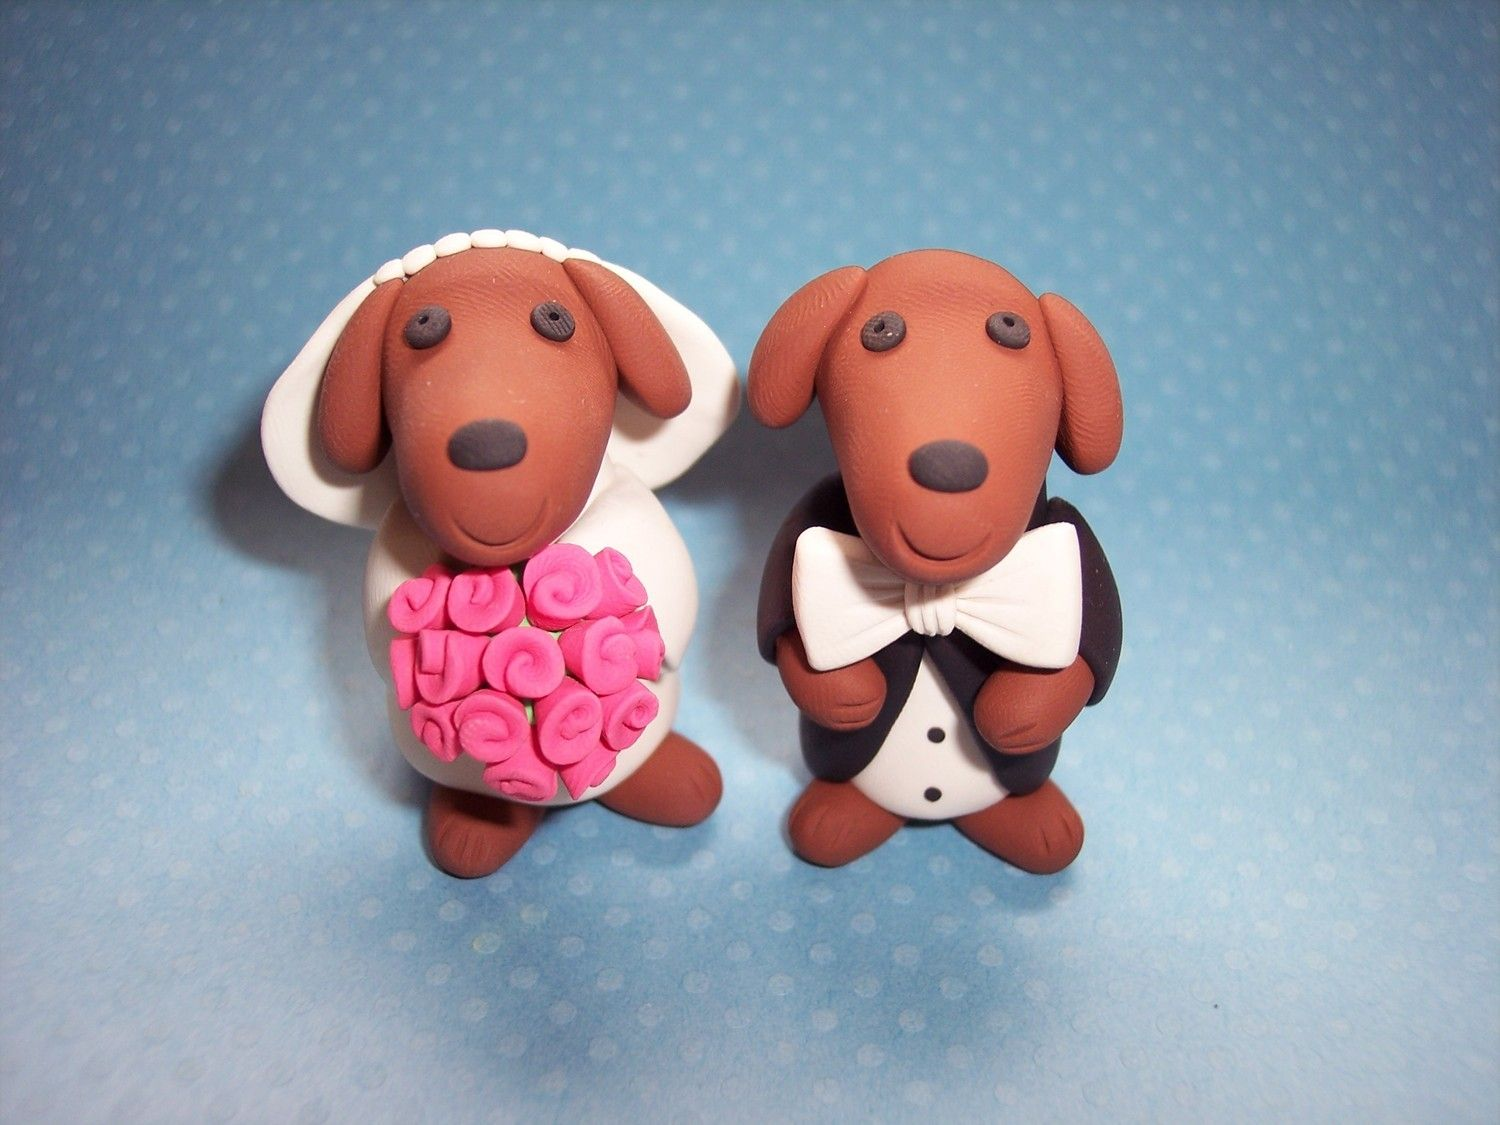 Daschund wedding cake toppers source nyimagesy penny